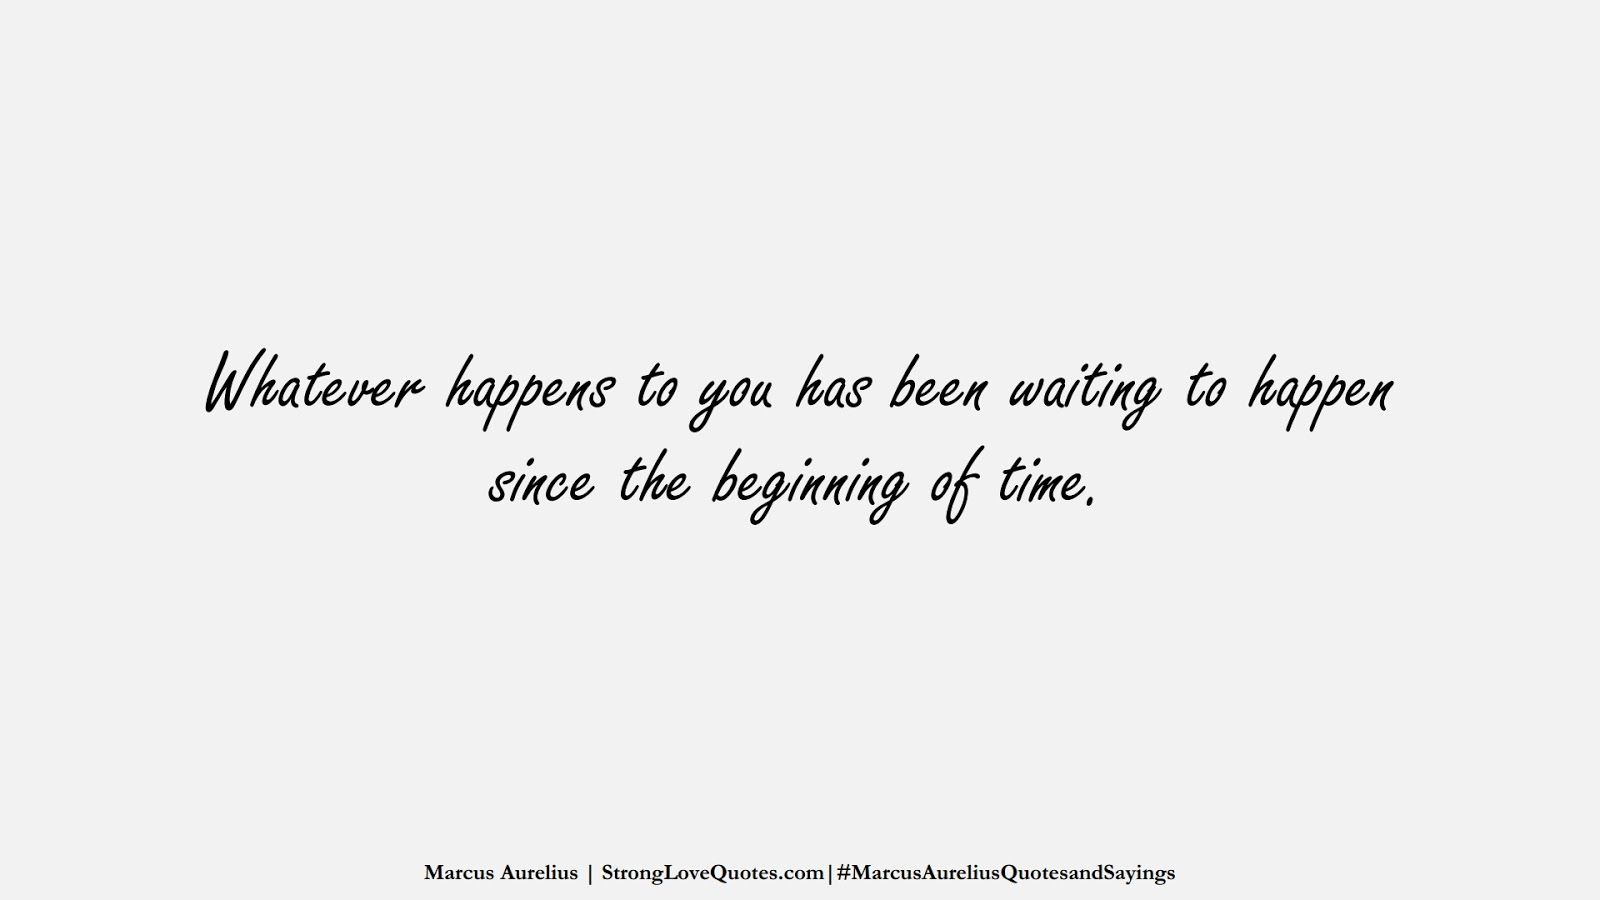 Whatever happens to you has been waiting to happen since the beginning of time. (Marcus Aurelius);  #MarcusAureliusQuotesandSayings